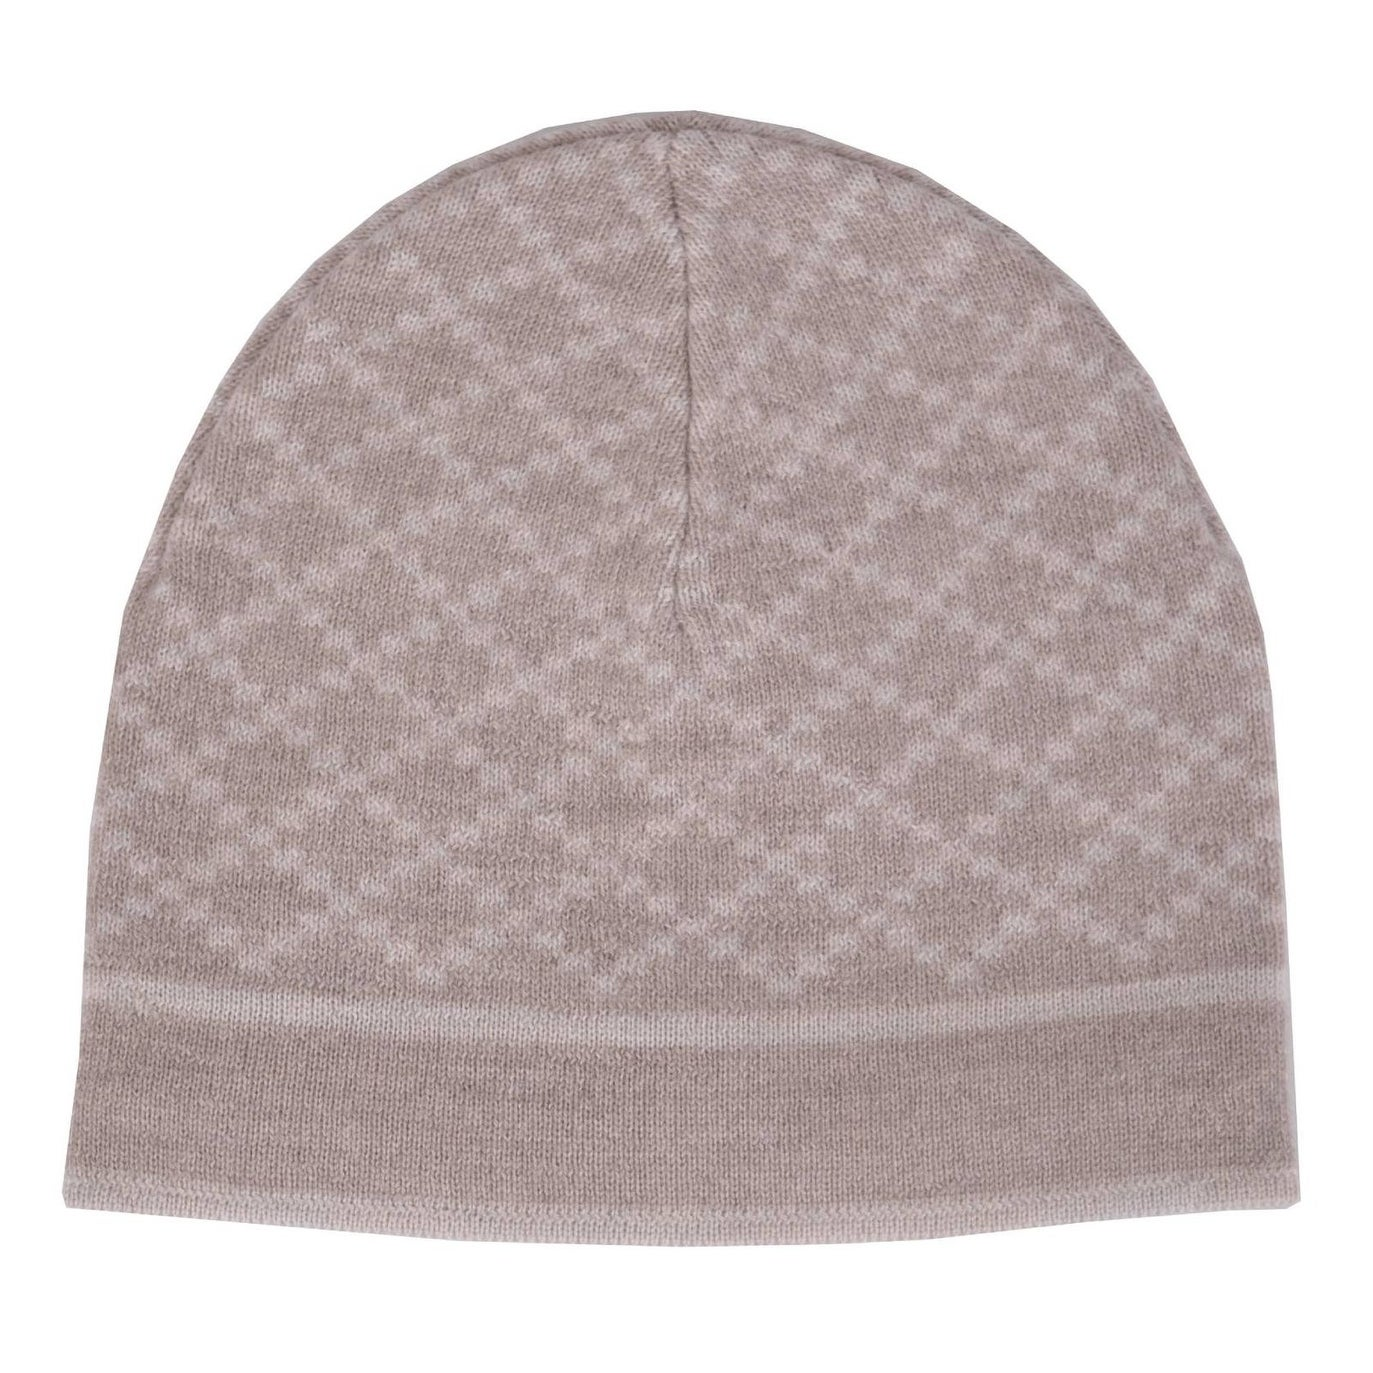 ef75579d Shop Gucci Men's 281600 Wool Diamante Camel Beige Ski Beanie Hat - One size  - Free Shipping Today - Overstock - 22543305